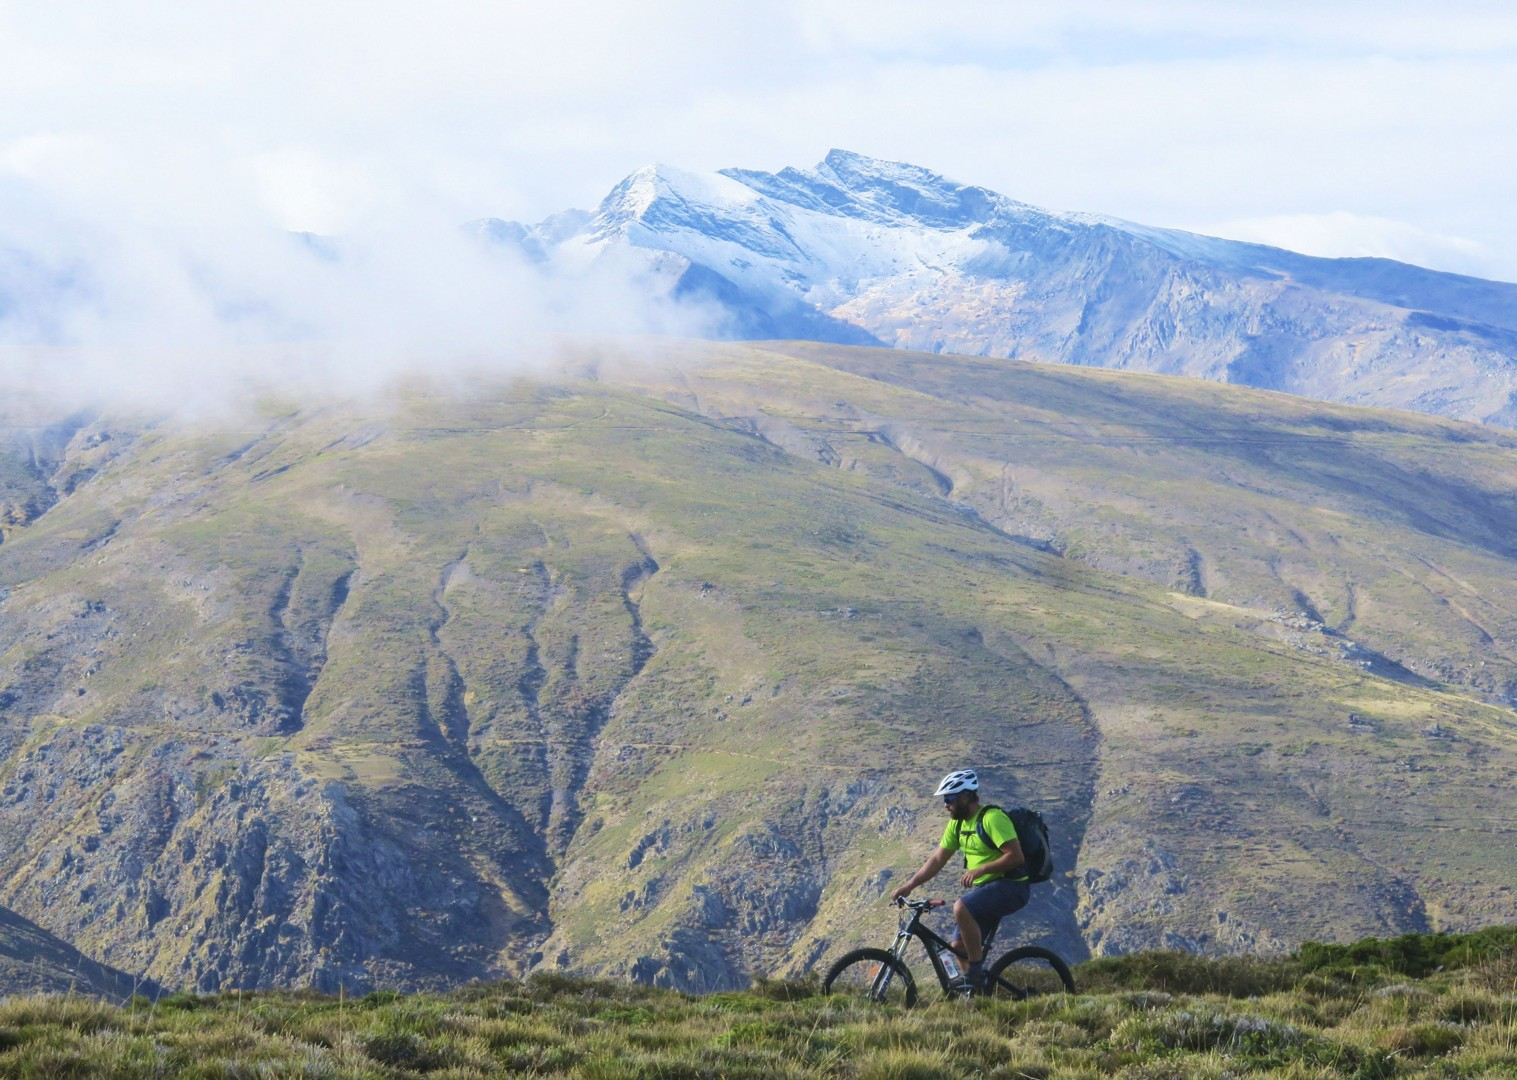 mountain-bike-holiday-in-highest-mountain-range-in-spain.jpg - Spain - Sensational Sierra Nevada - Guided Mountain Bike Holiday - Mountain Biking